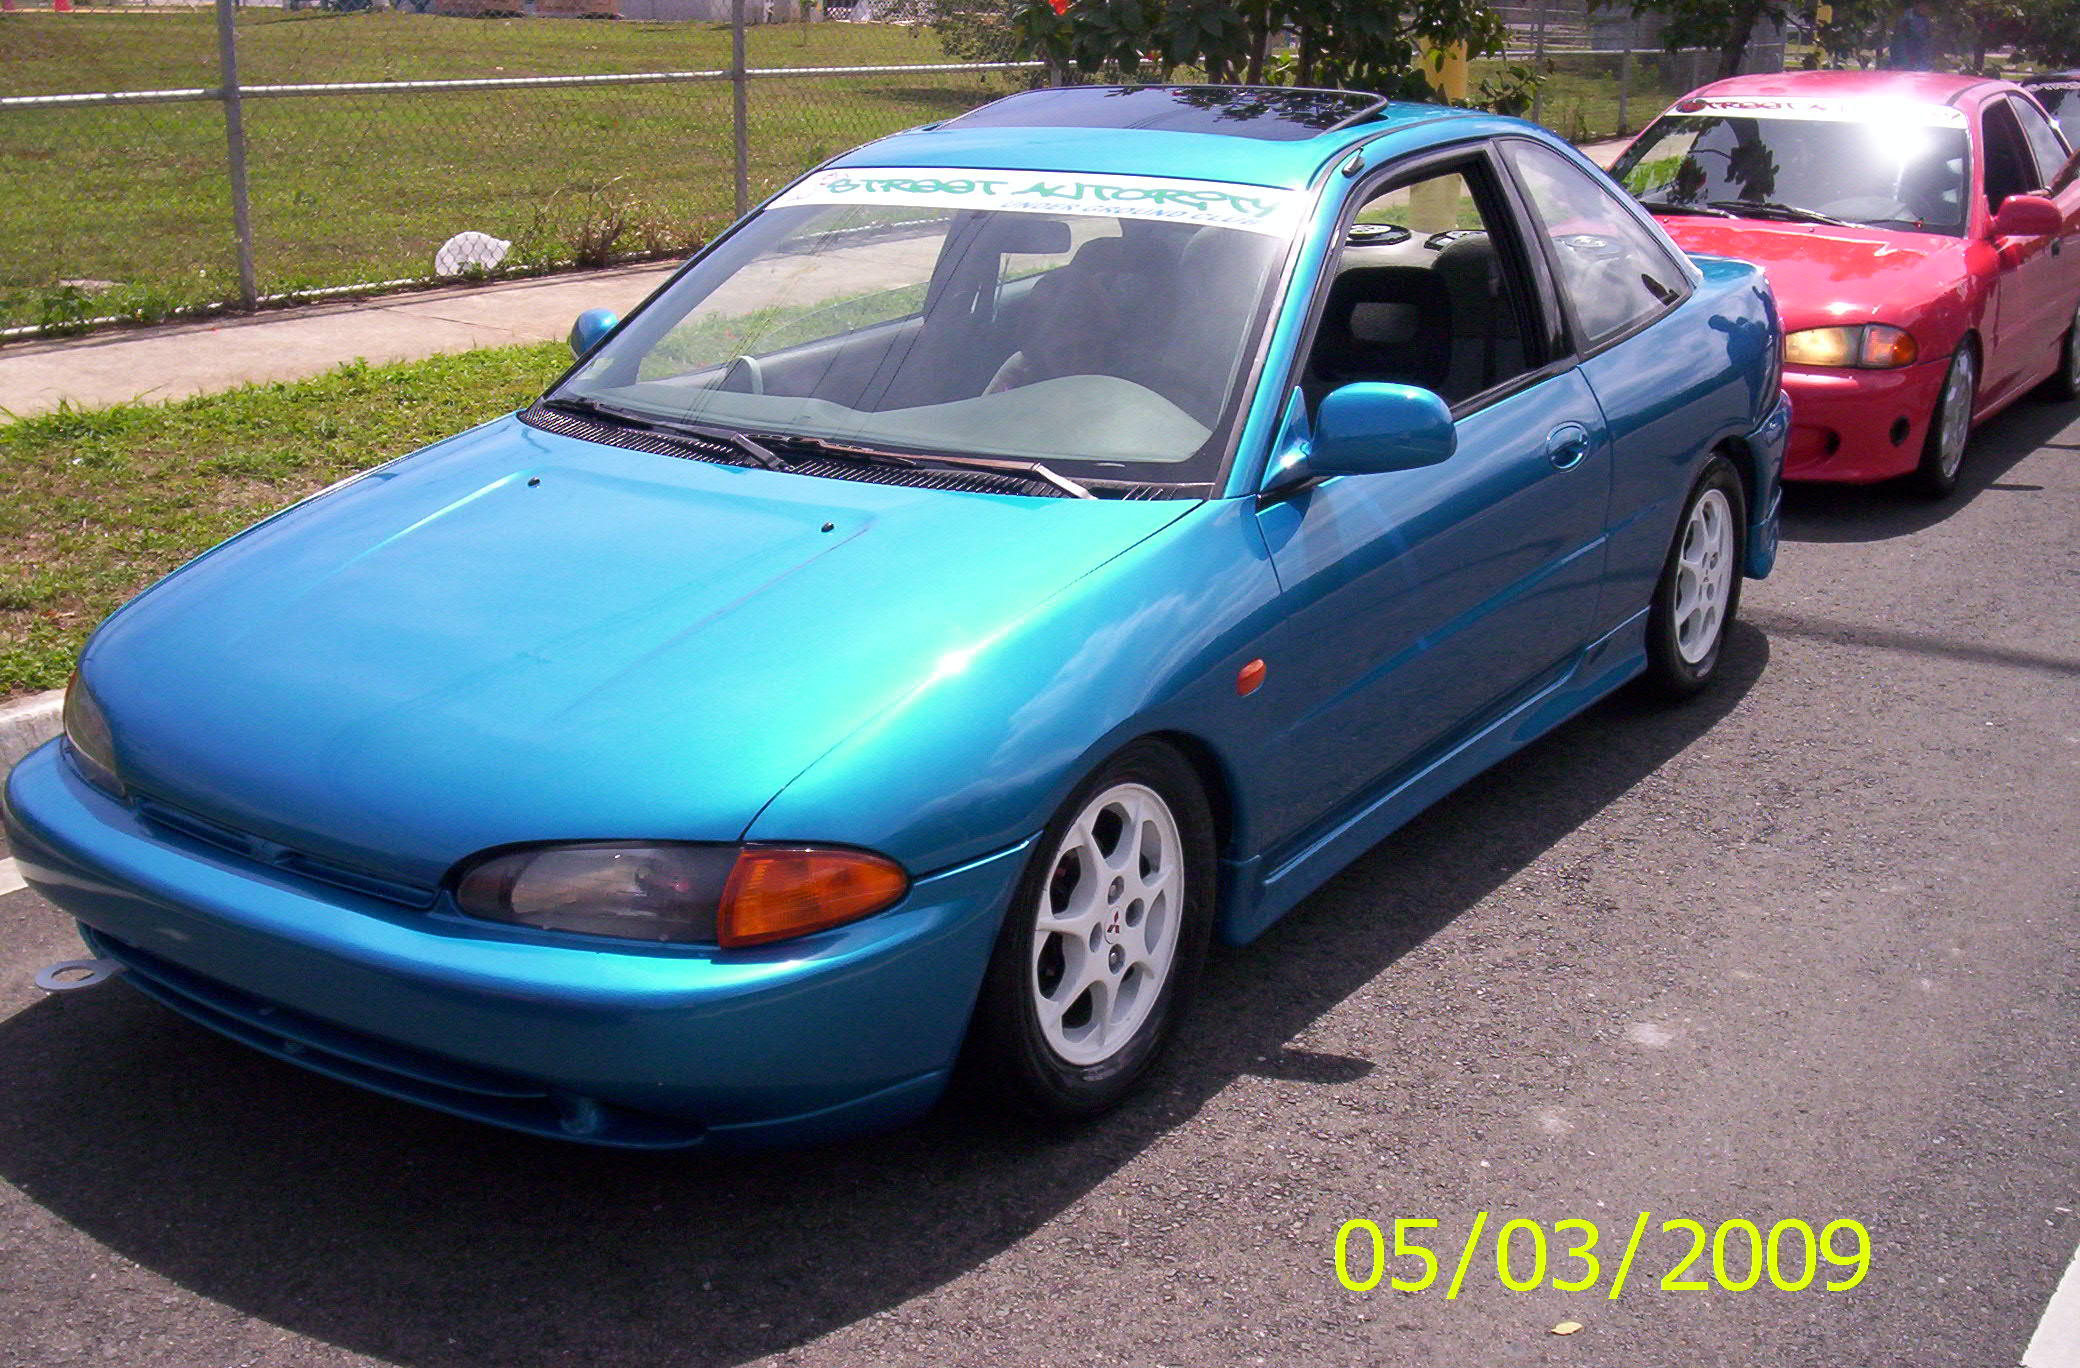 CHRISTIANMIRAGE 1995 Mitsubishi Mirage